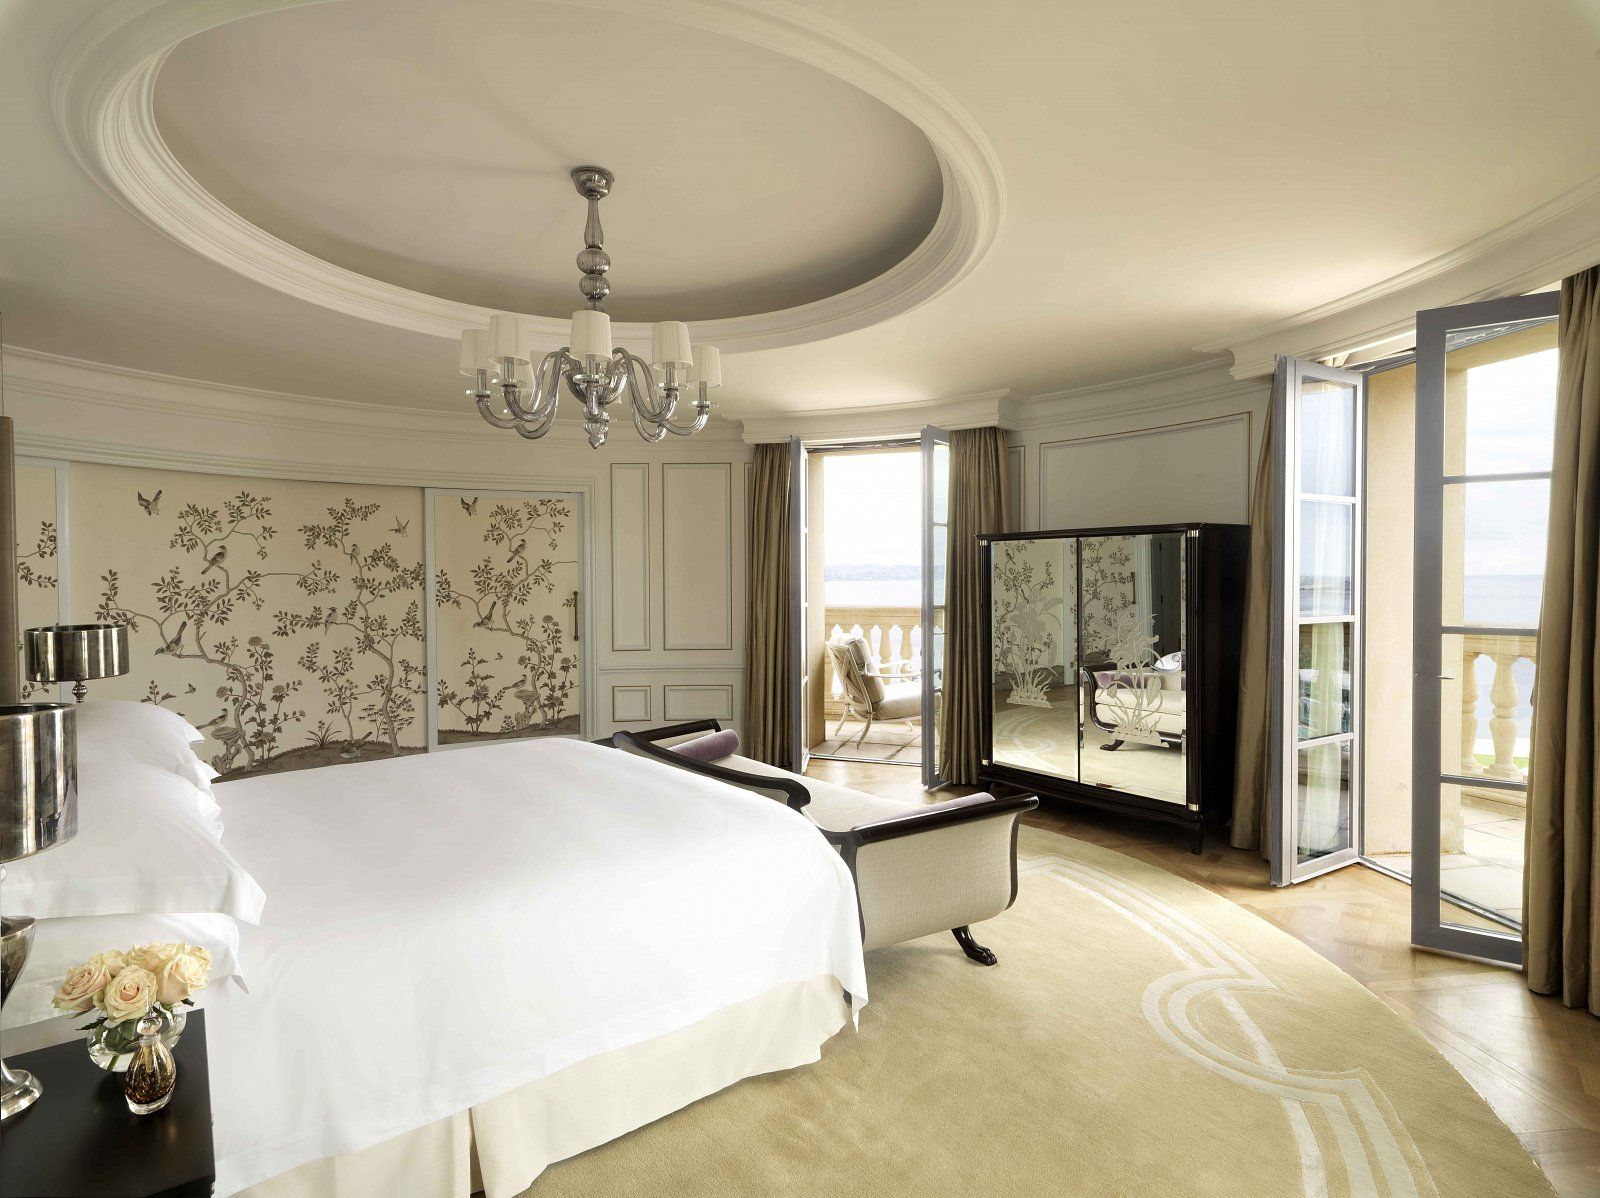 Their Design Style Is Authentic Smart And Inspiring Combining Elements With A Sophisticated To Luxury Hotels Interior Luxury Hotel Room Hotel Interior Design